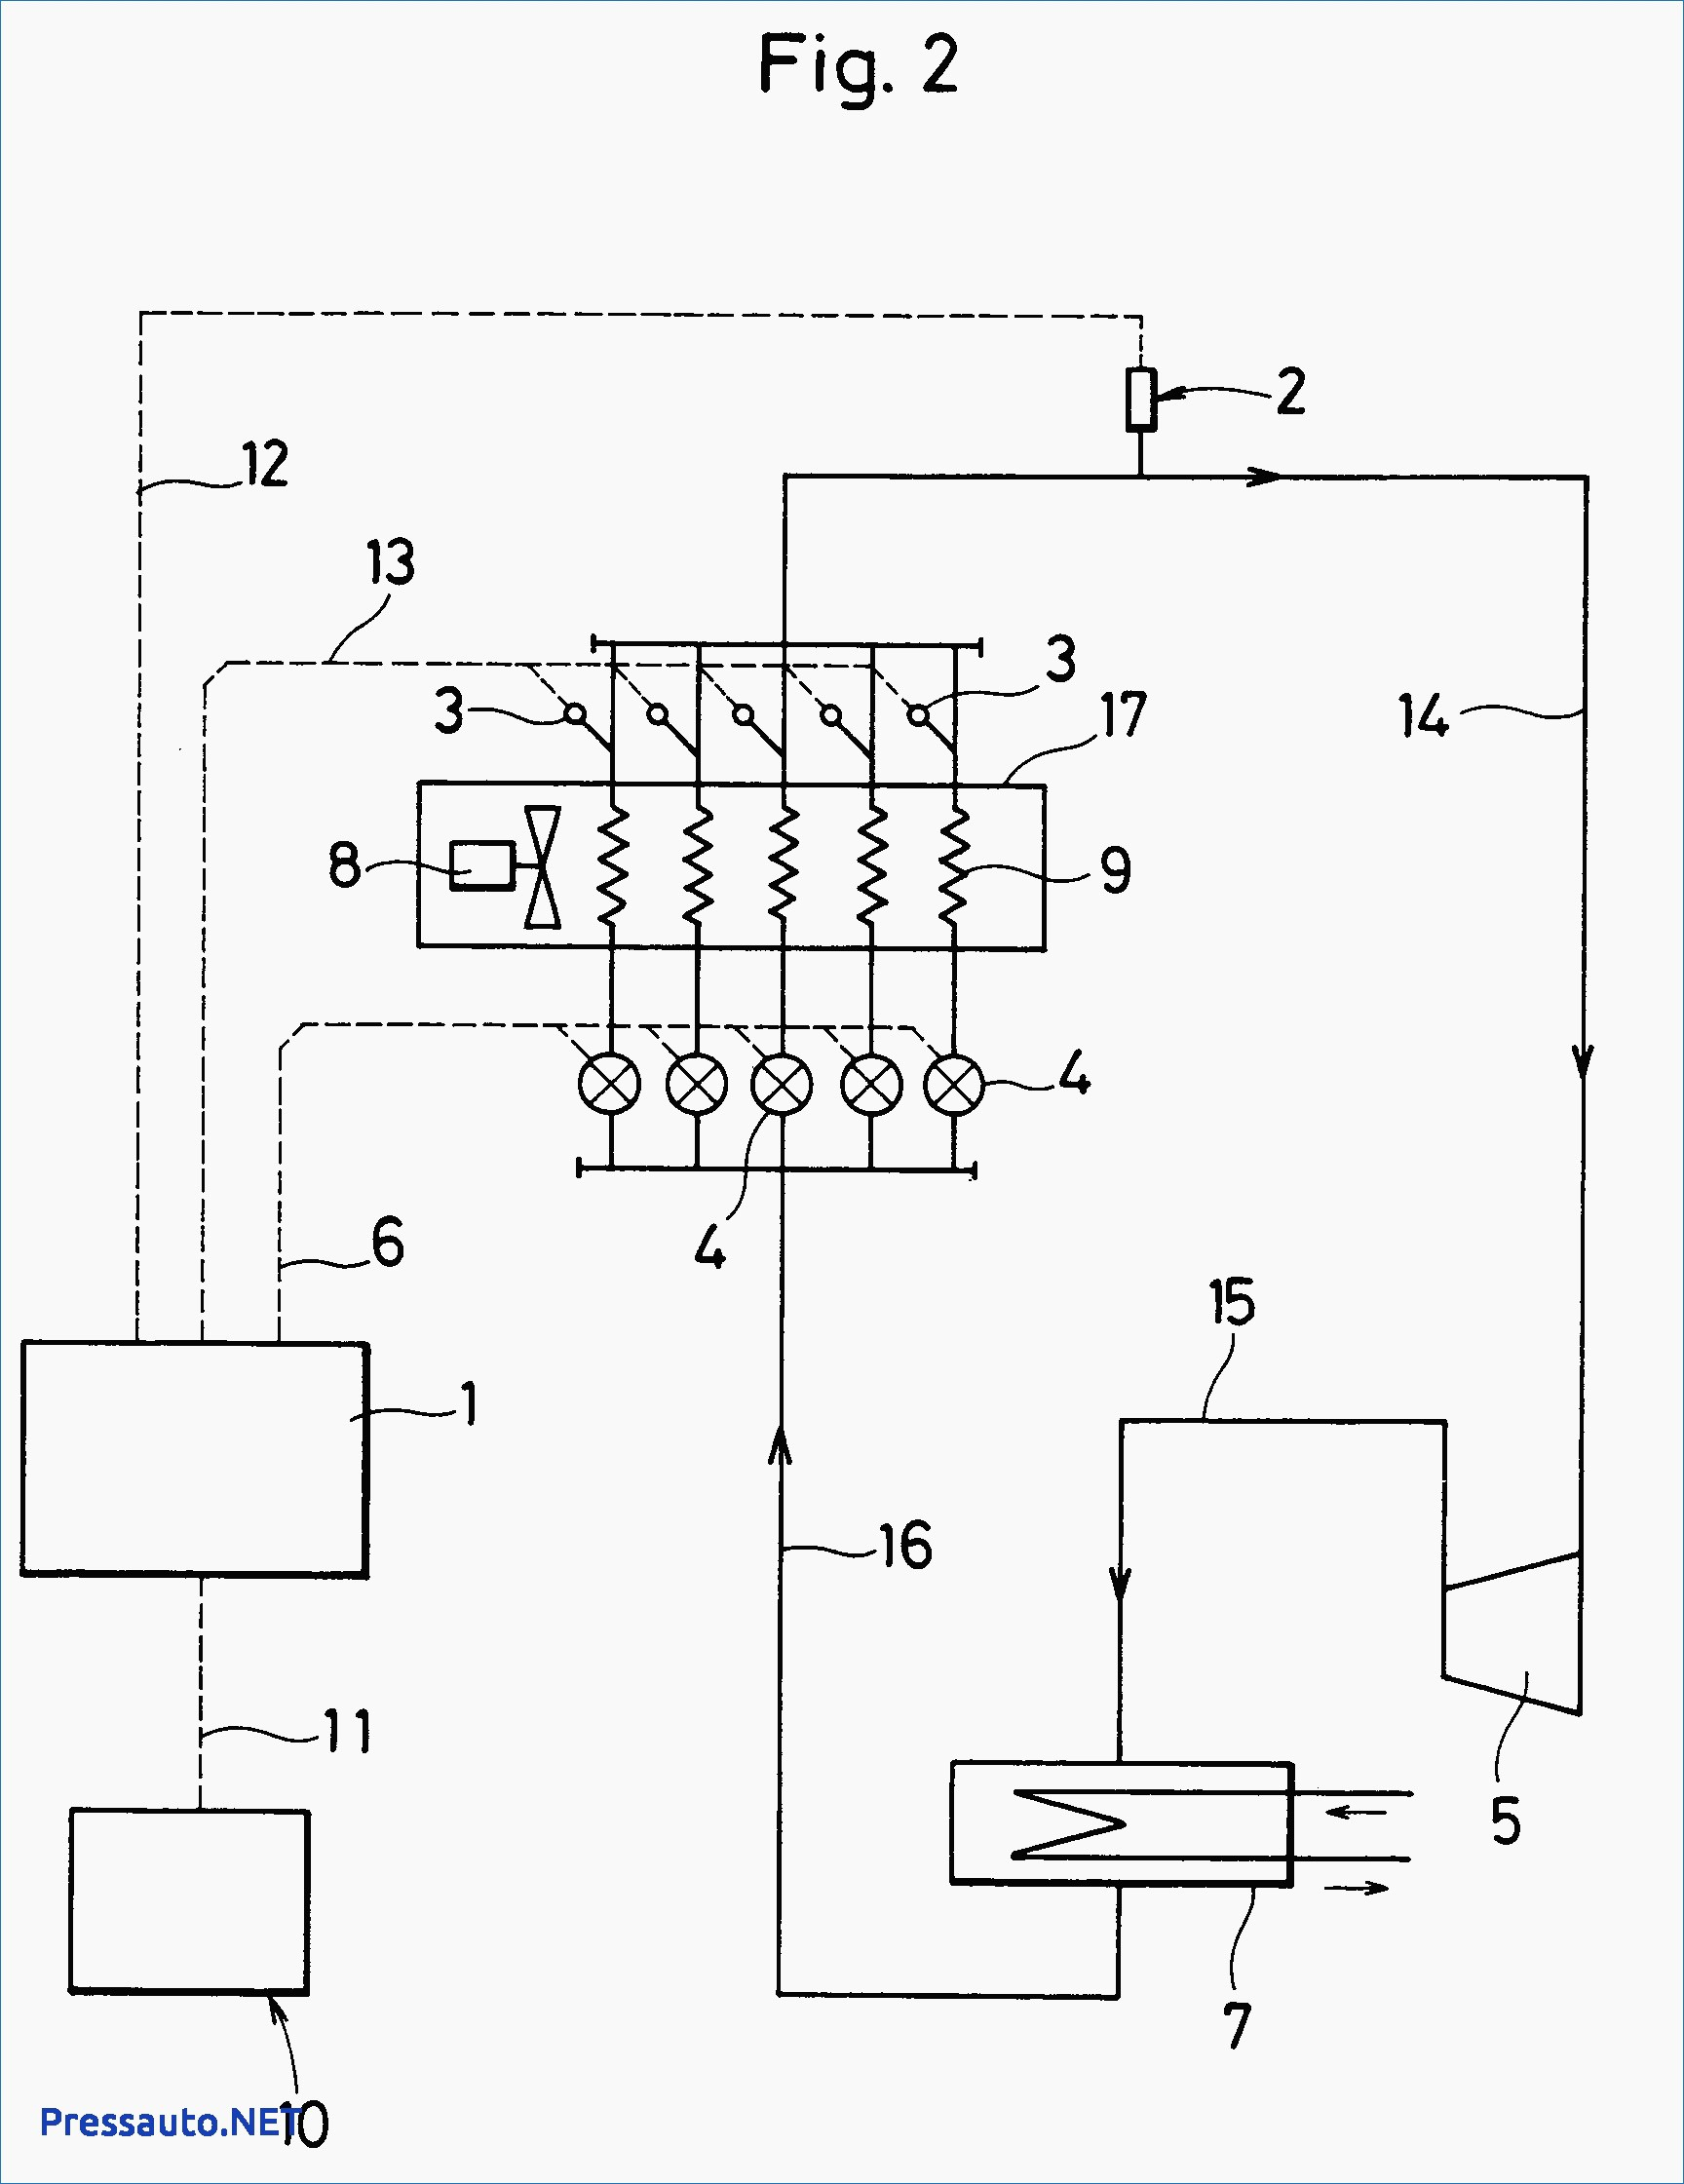 heatcraft walk in cooler wiring diagram Download-heatcraft walk in freezer wiring diagram Download Wiring Diagram Amazing Heatcraft Refrigeration Diagrams For Freezer 1-a